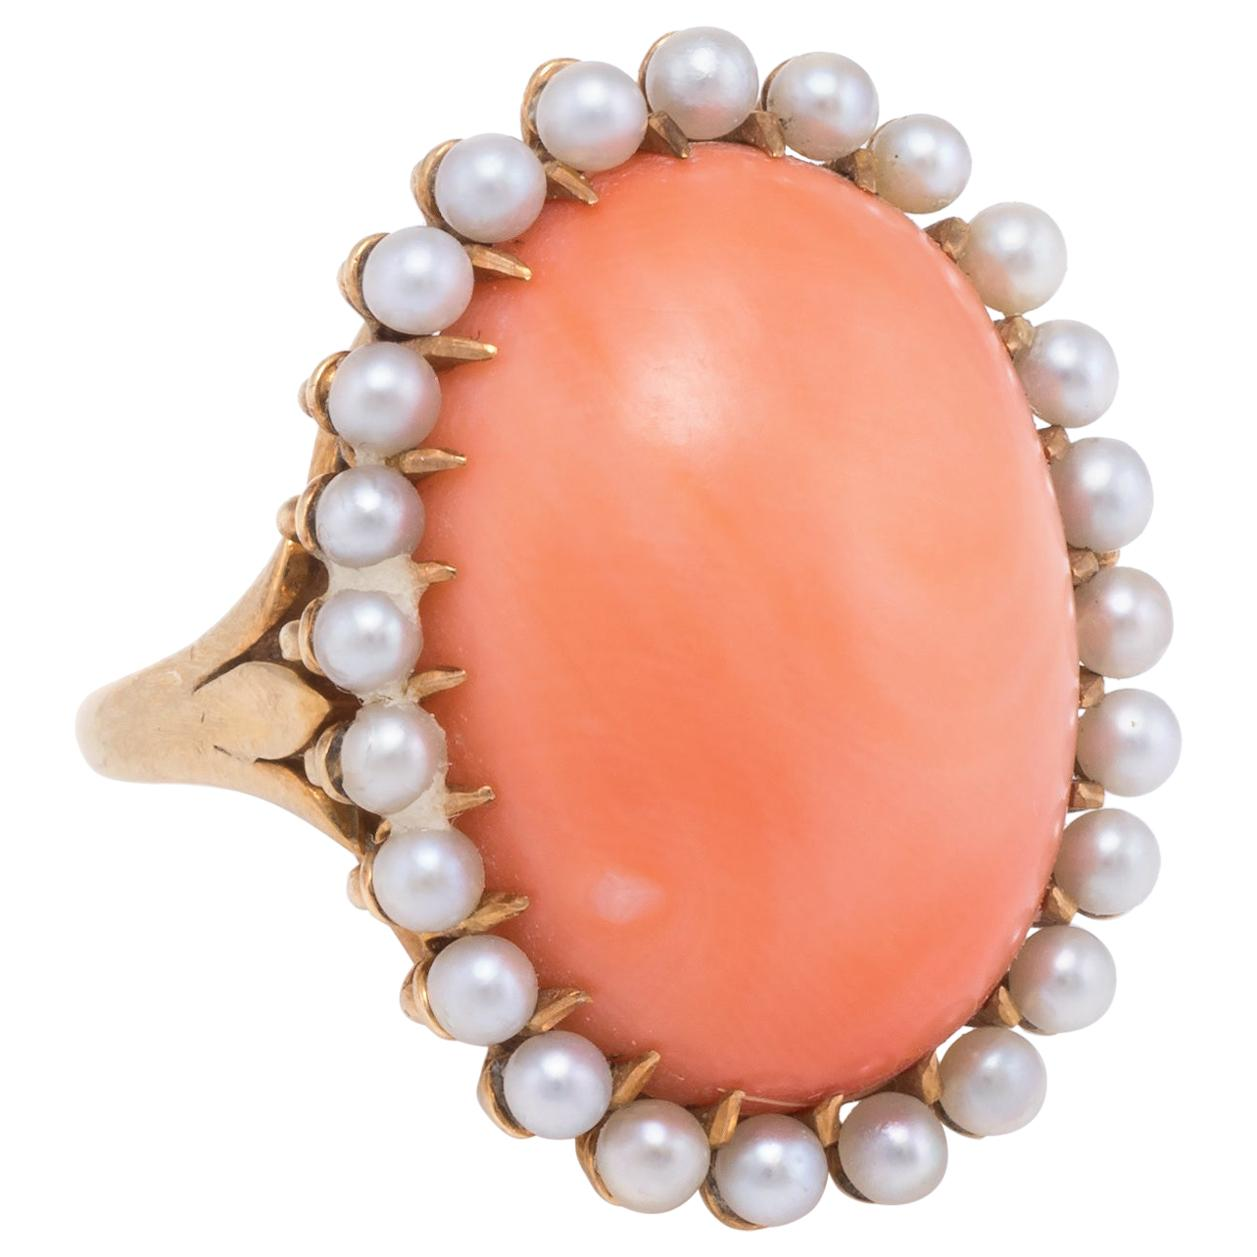 Natural Coral Pearl Cocktail Ring Vintage 14 Karat Gold Estate Fine Jewelry